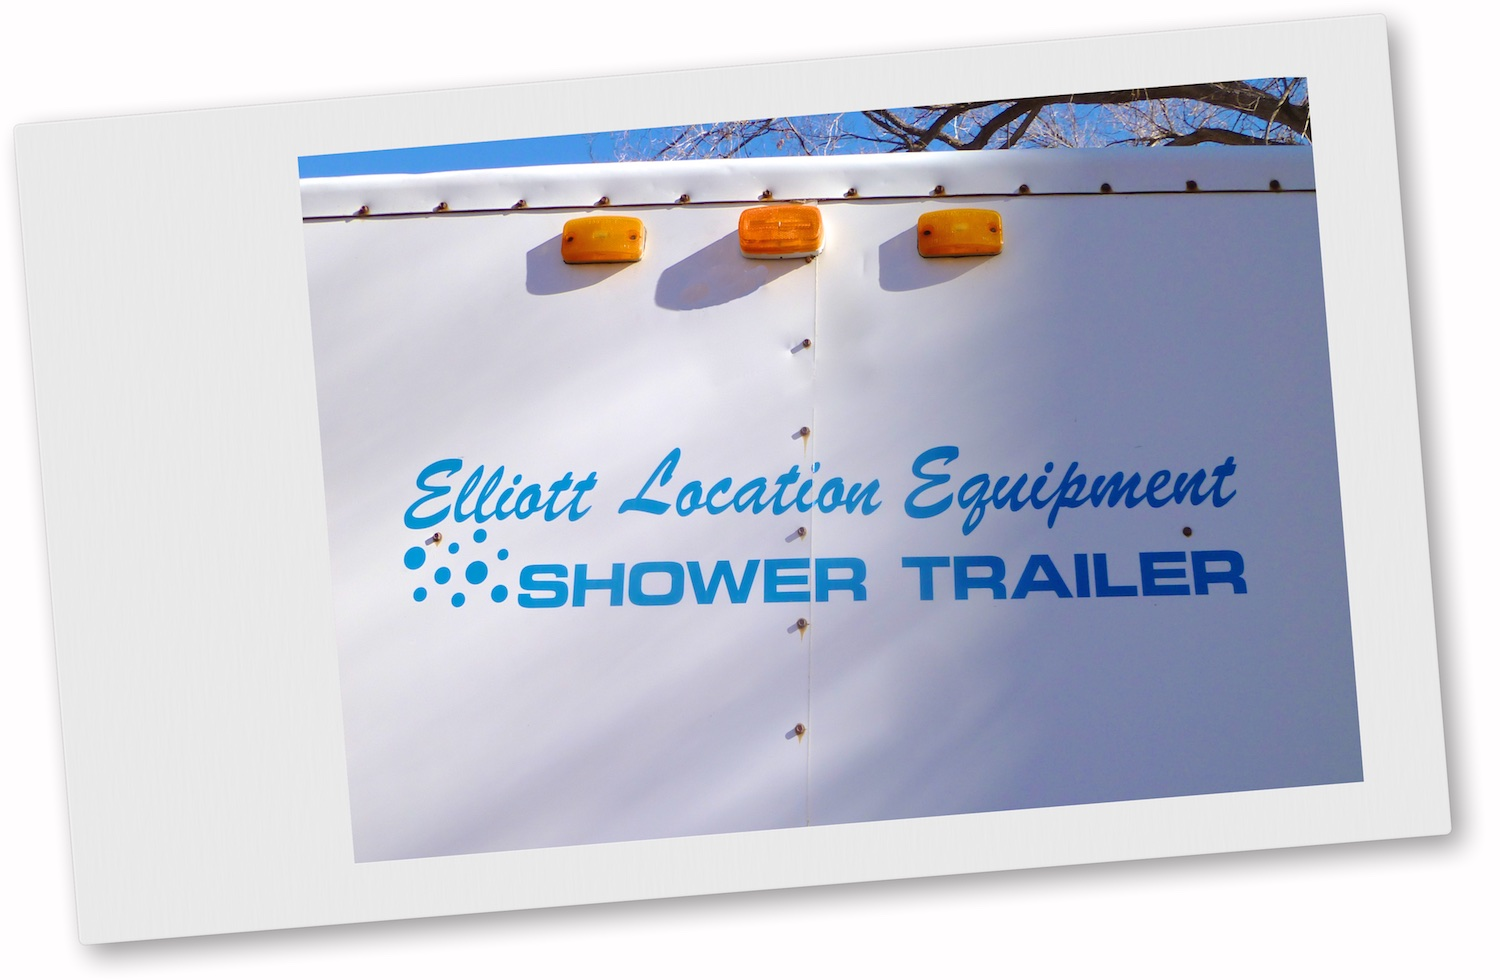 Shower Trailer. Four private units, each has private dressing area & sink with drinking water. Call Wayne Elliott for details (505) 328-0909.  ElliottLocationEquipment.com